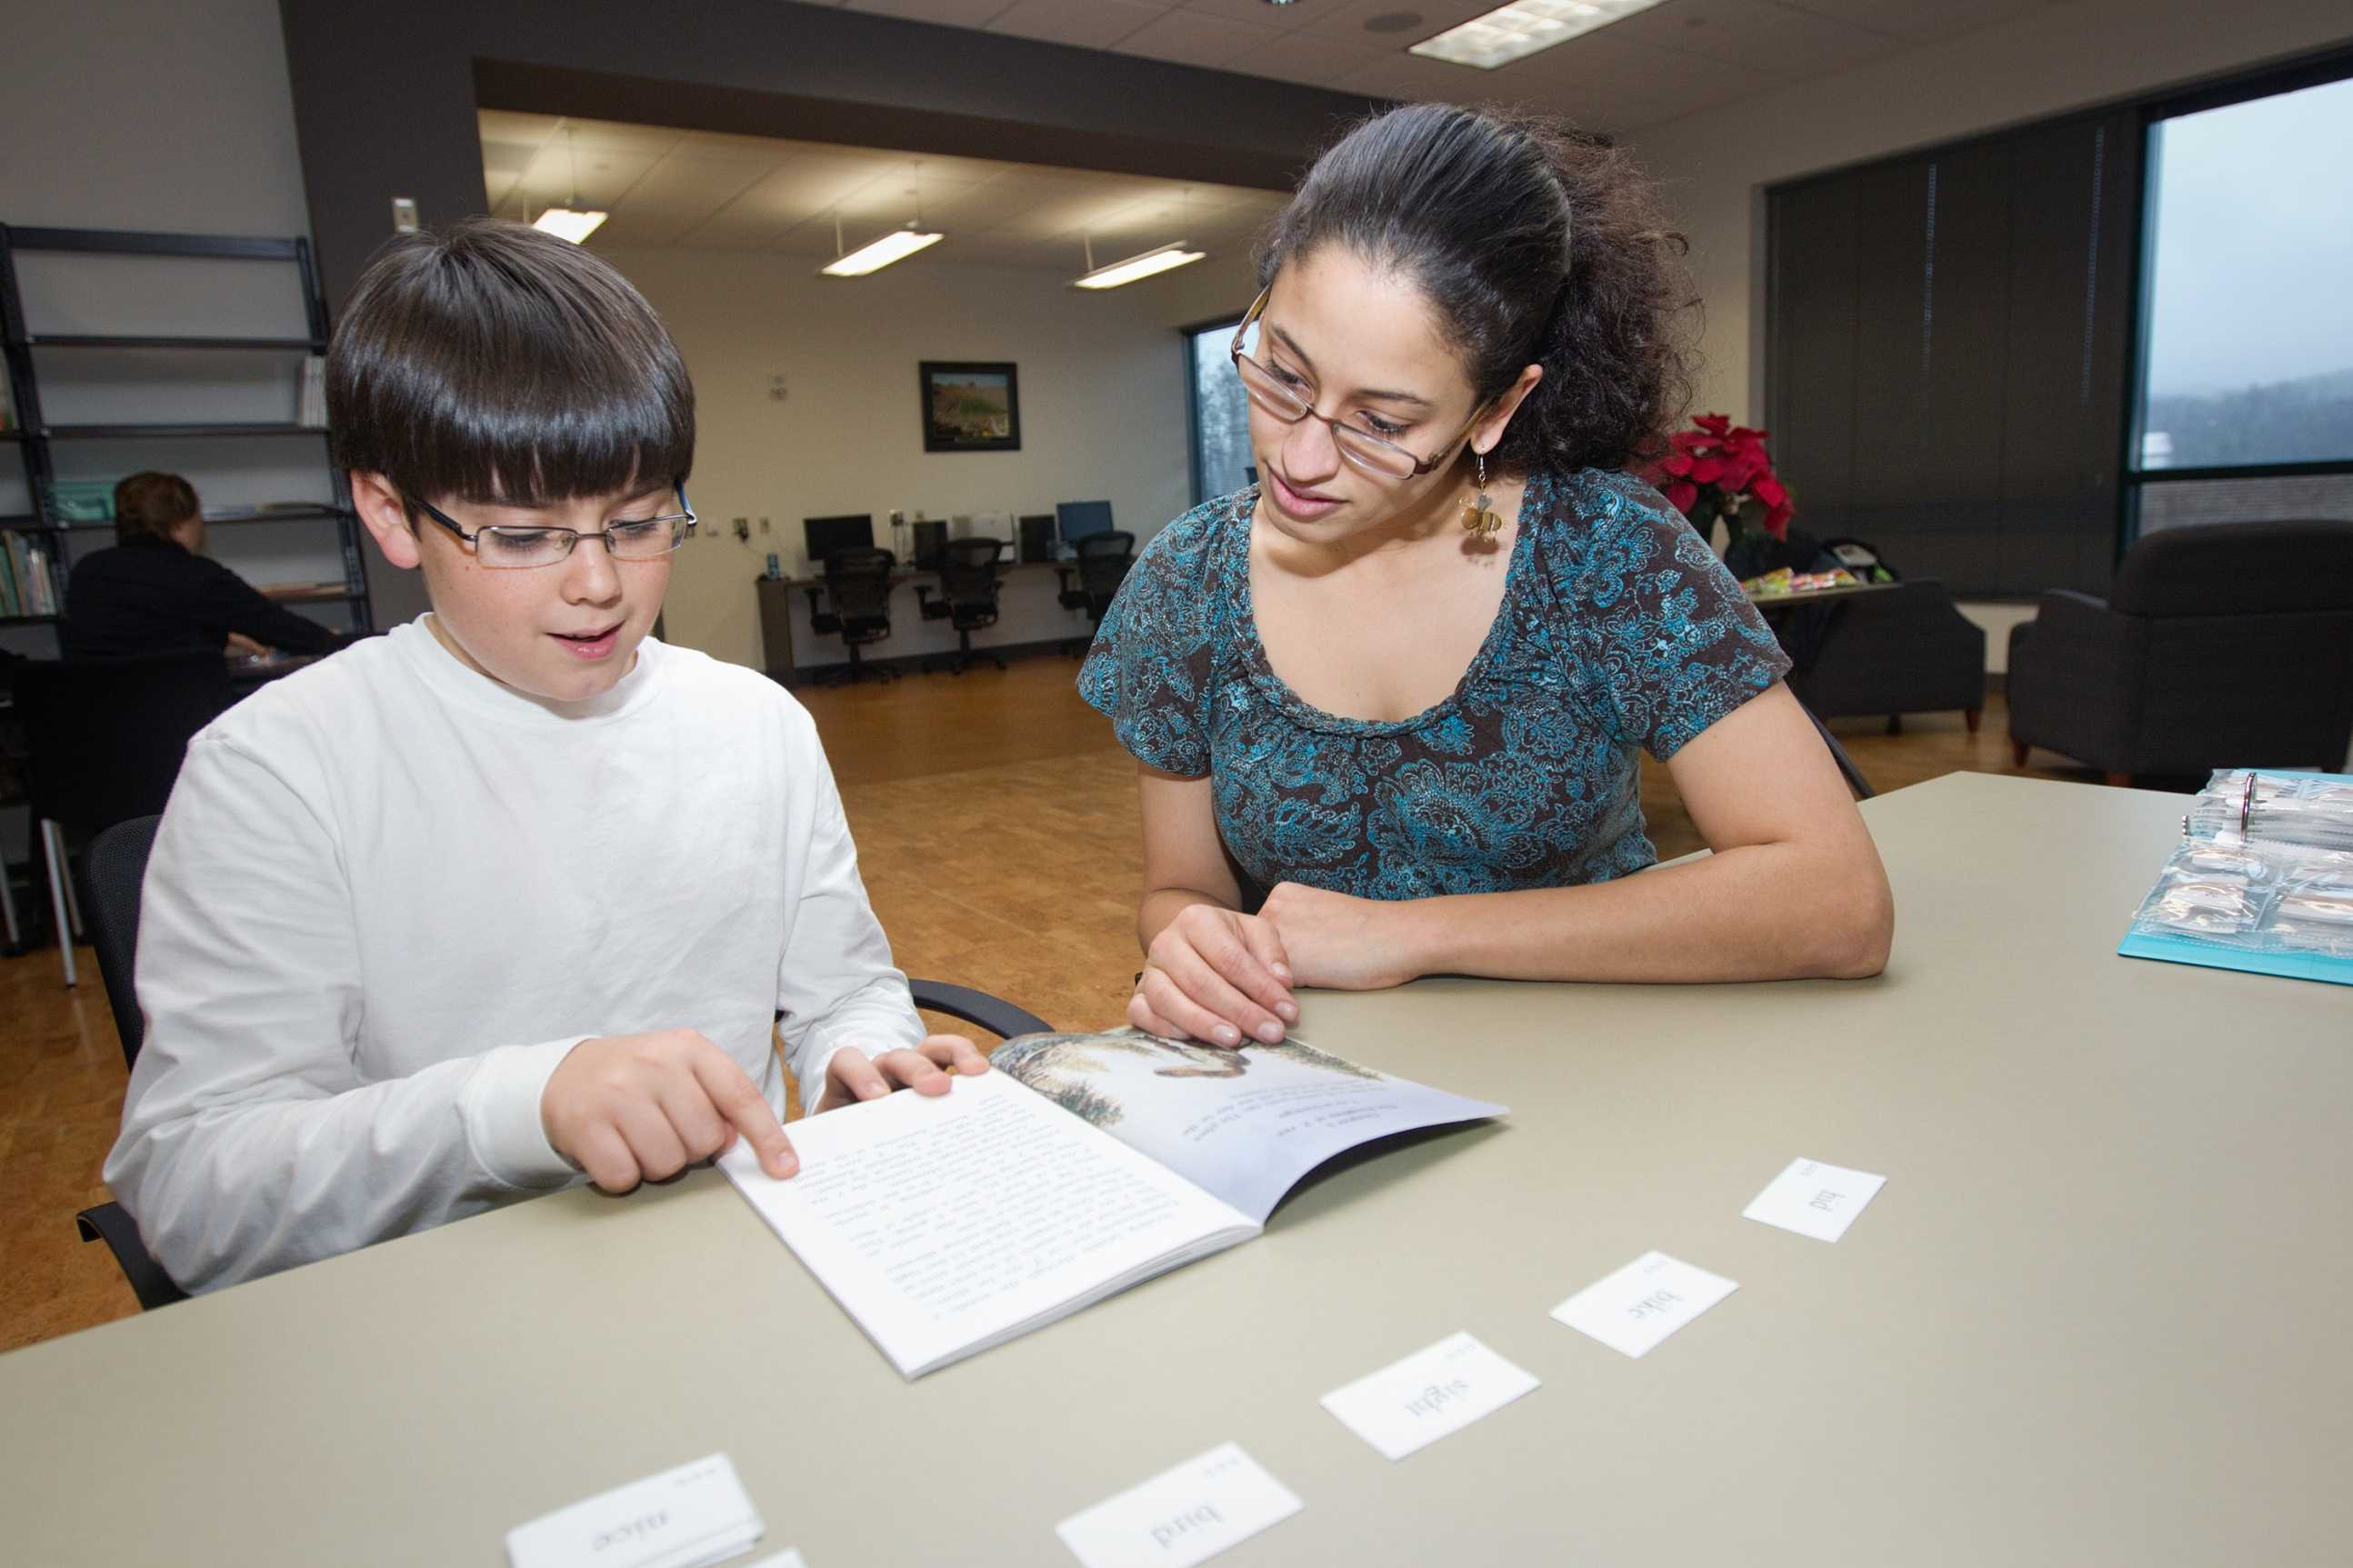 Reading clinic tutors children, provides experience